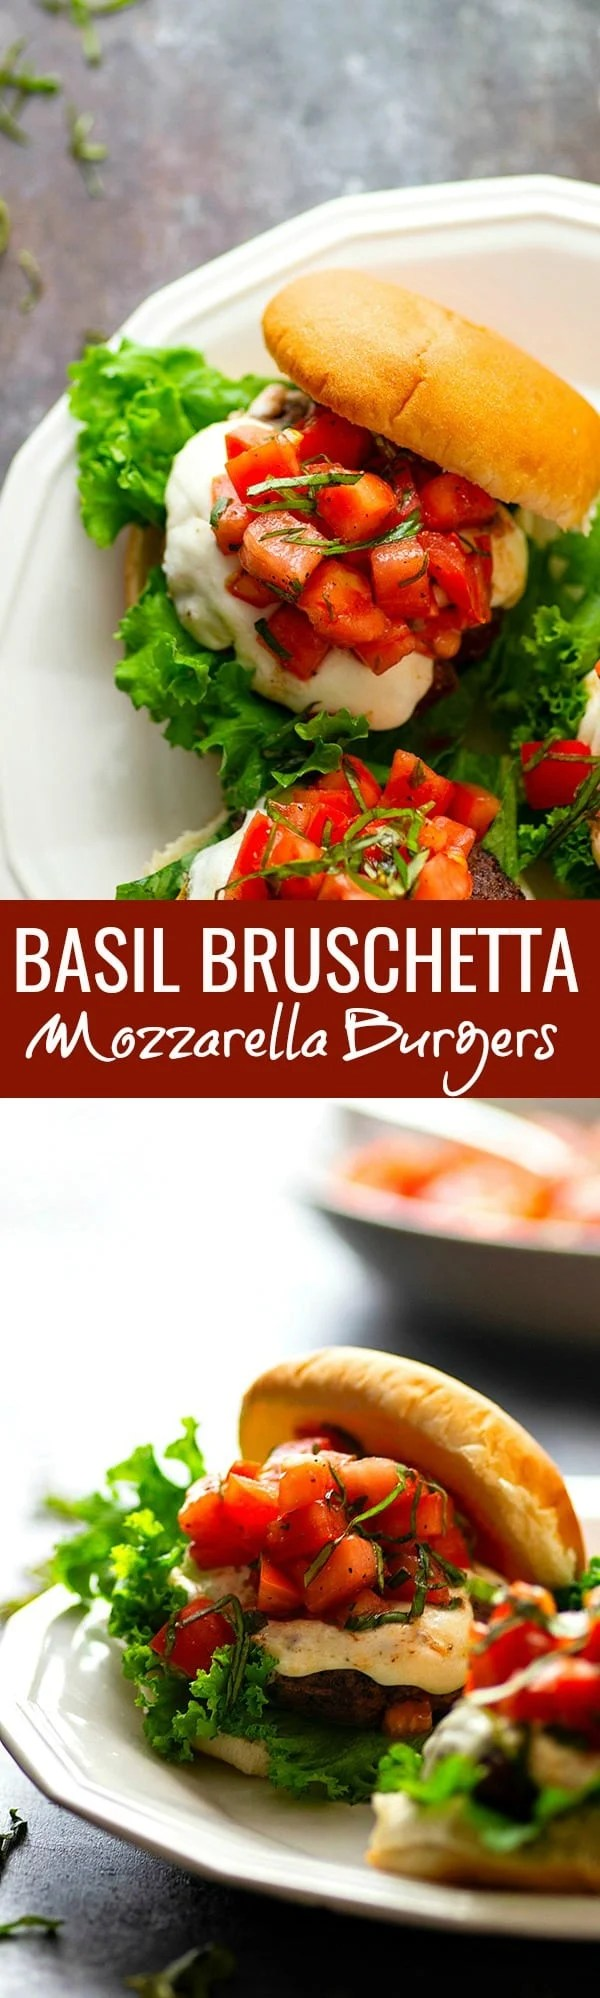 Basil Bruschetta Mozzarella Burgers - Juicy, melty mozzarella burgers are piled high with a flavorful basil bruschetta topping for the BEST summer burger any cookout could ask for!